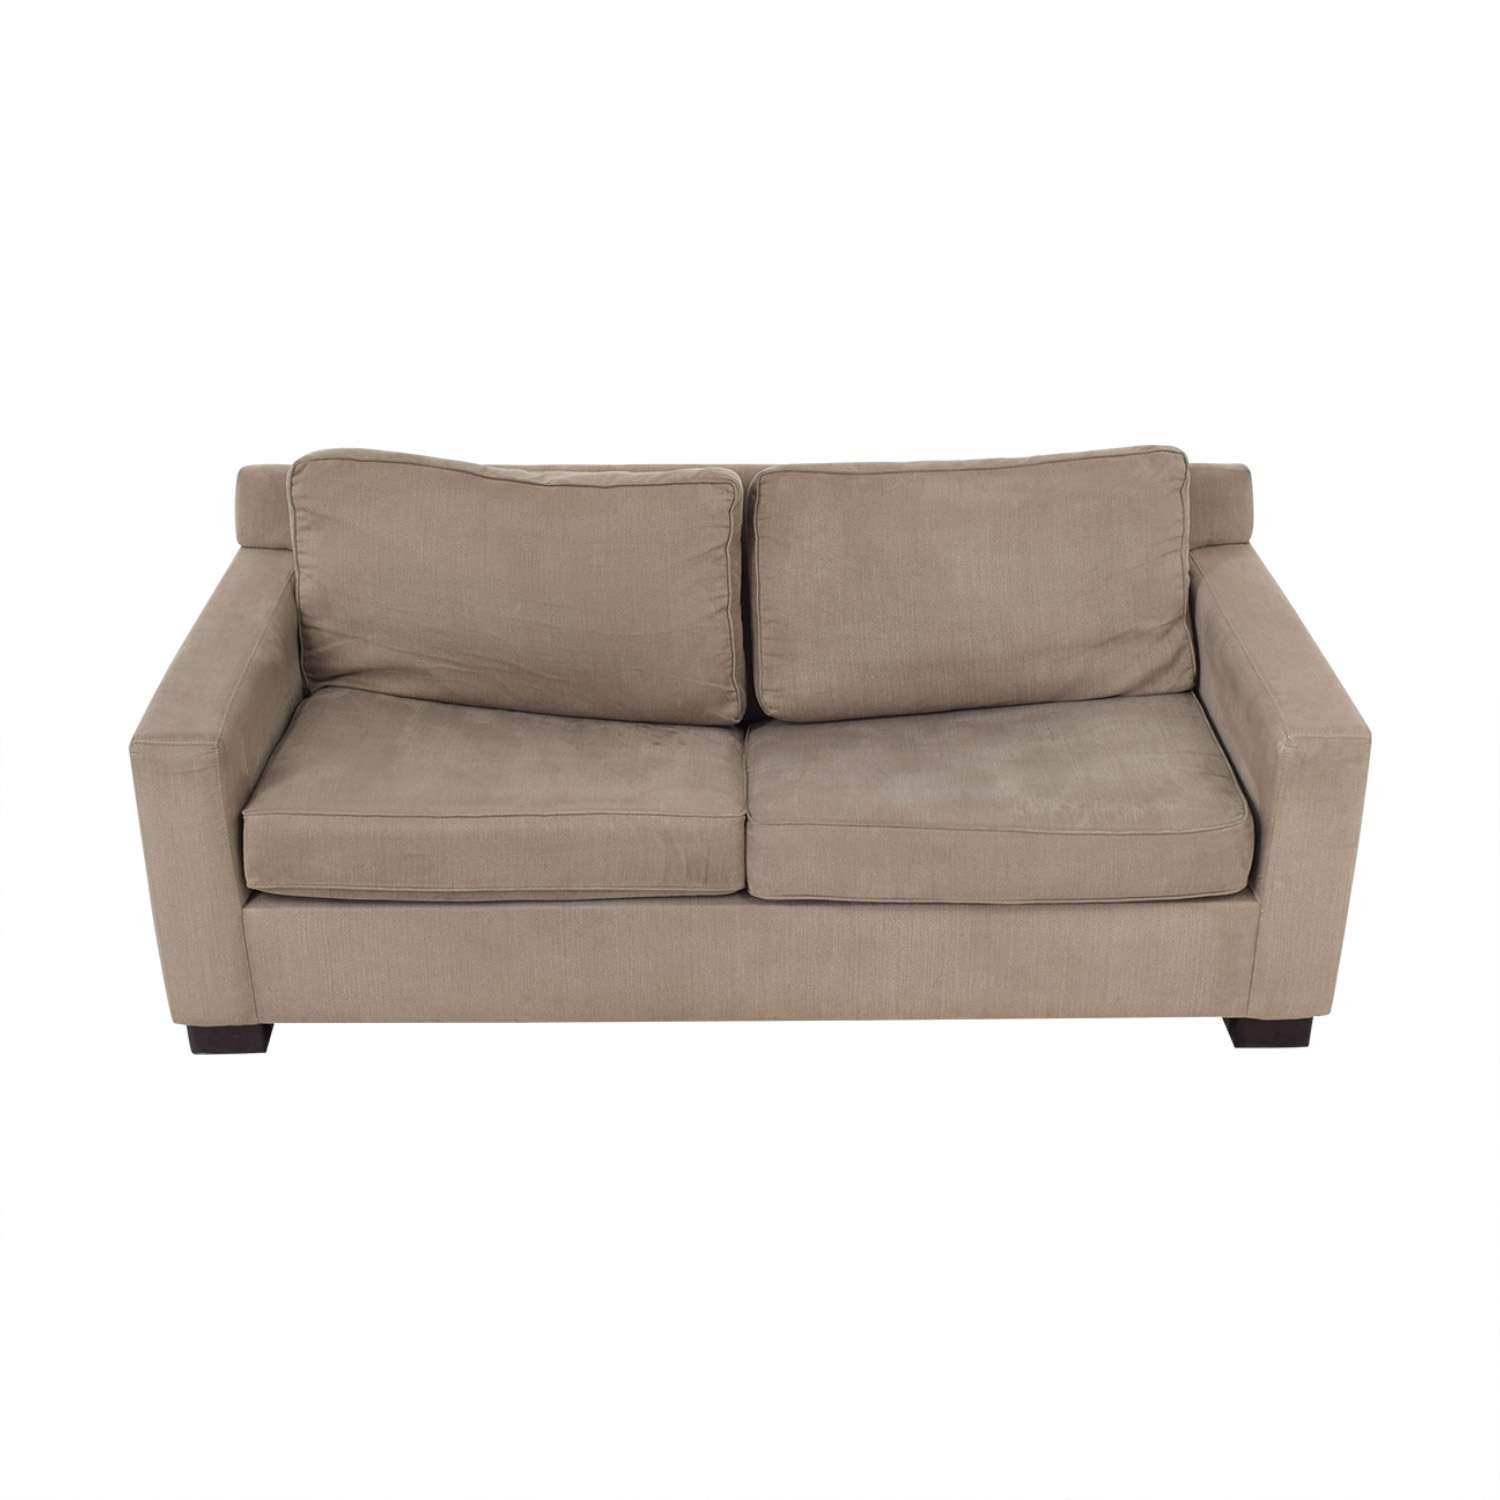 Urban Barn Urban Barn Apartment Sleeper Sofa & Ottoman ma